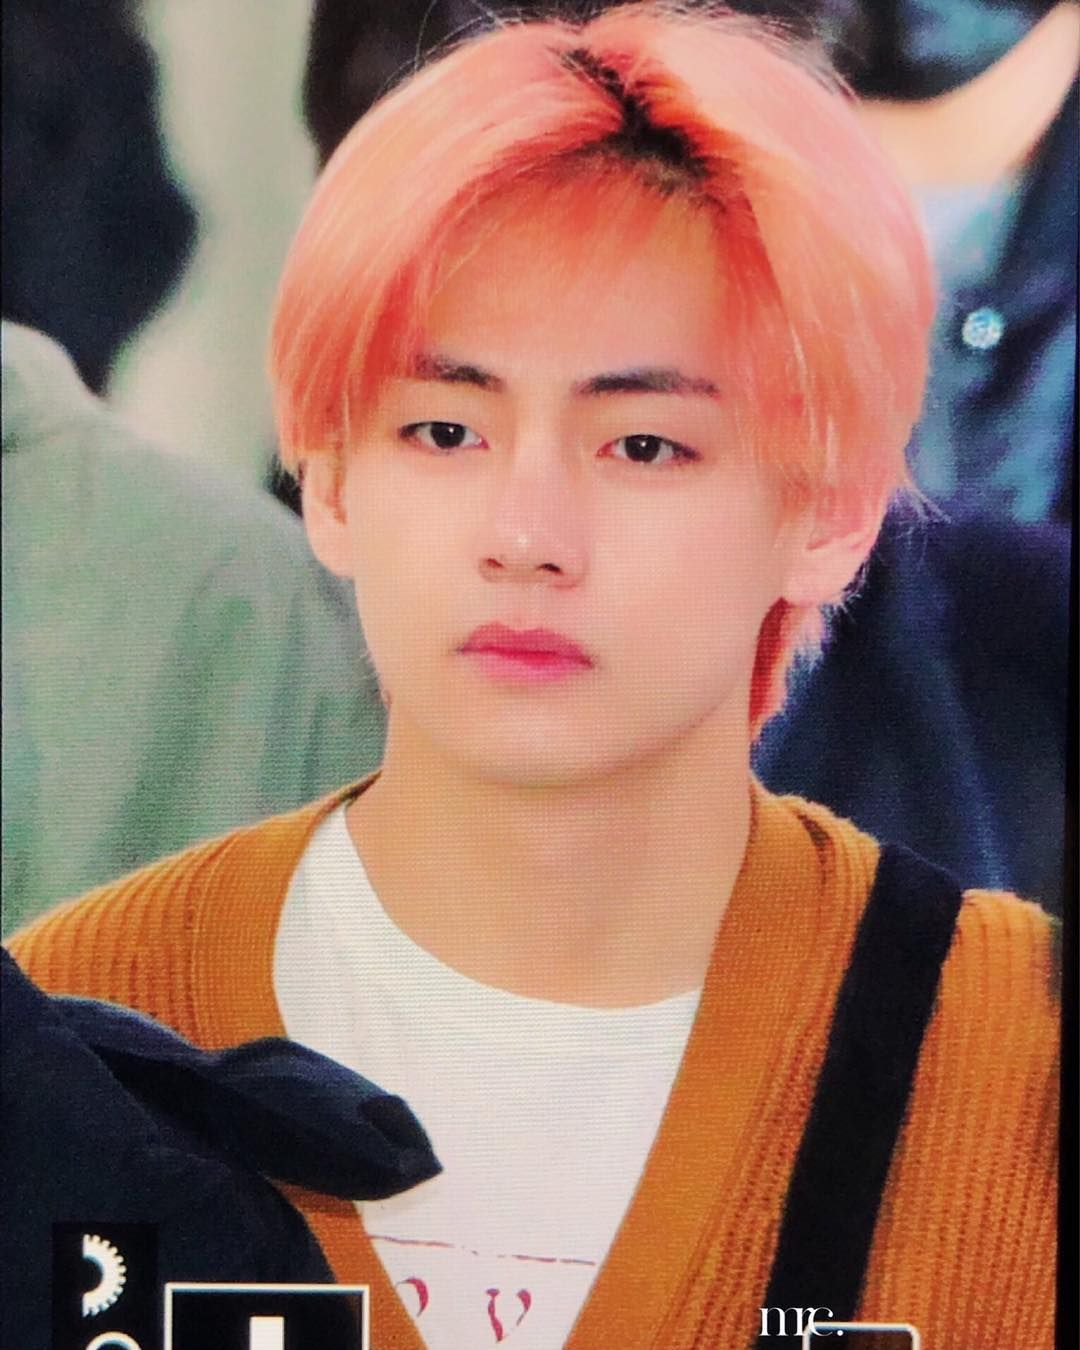 Bts Kimtaehyung Mani Di Instagram Taehyung Looks So Tired Sleepy Please Eat Well And Take Rest Taehyung Bts Taehyung Bts